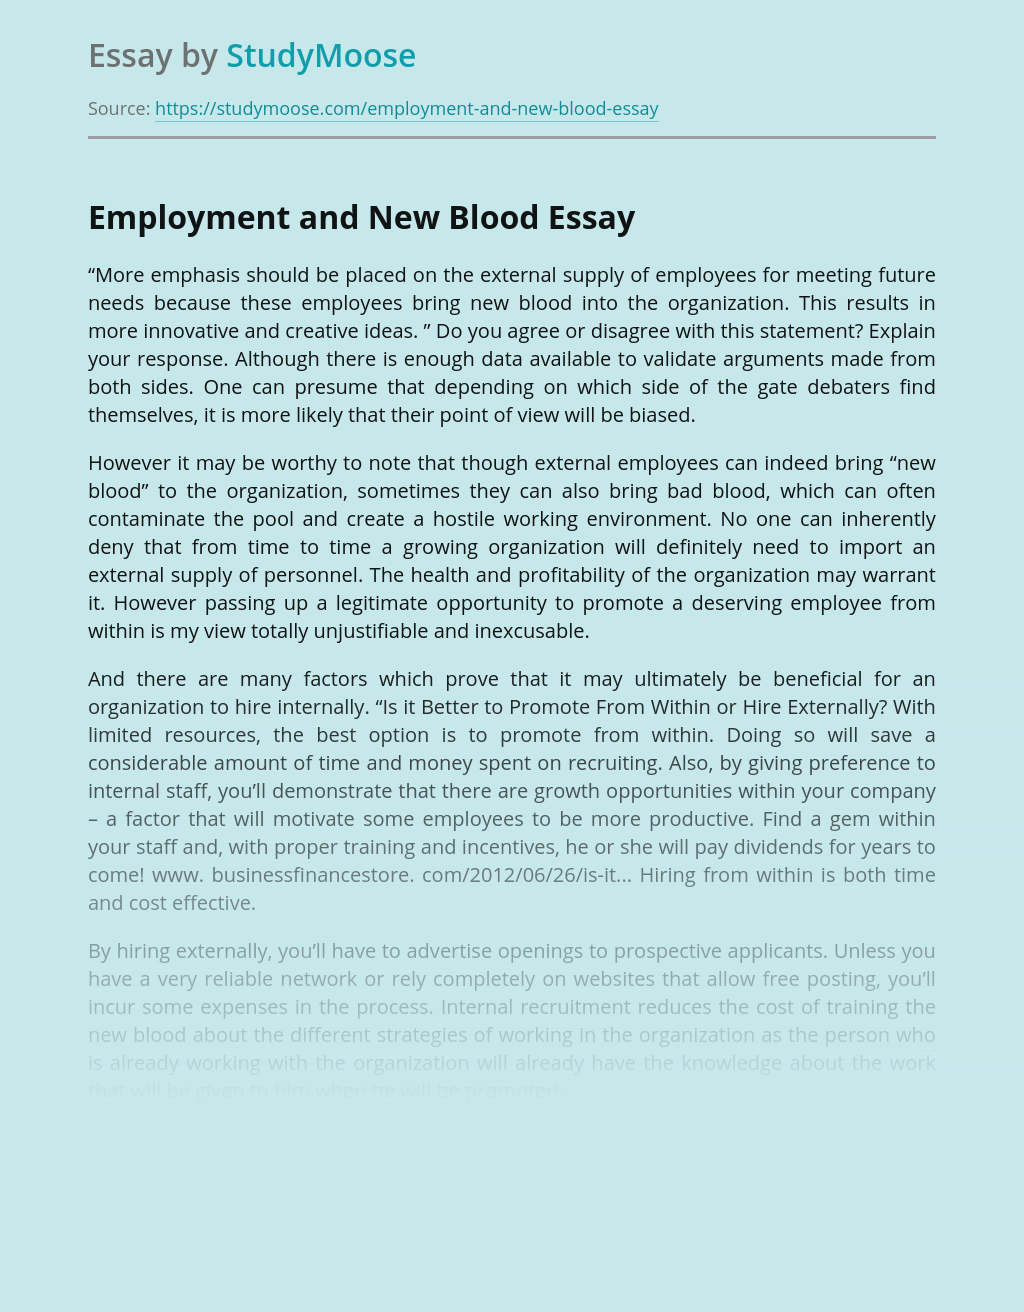 Employment and New Blood